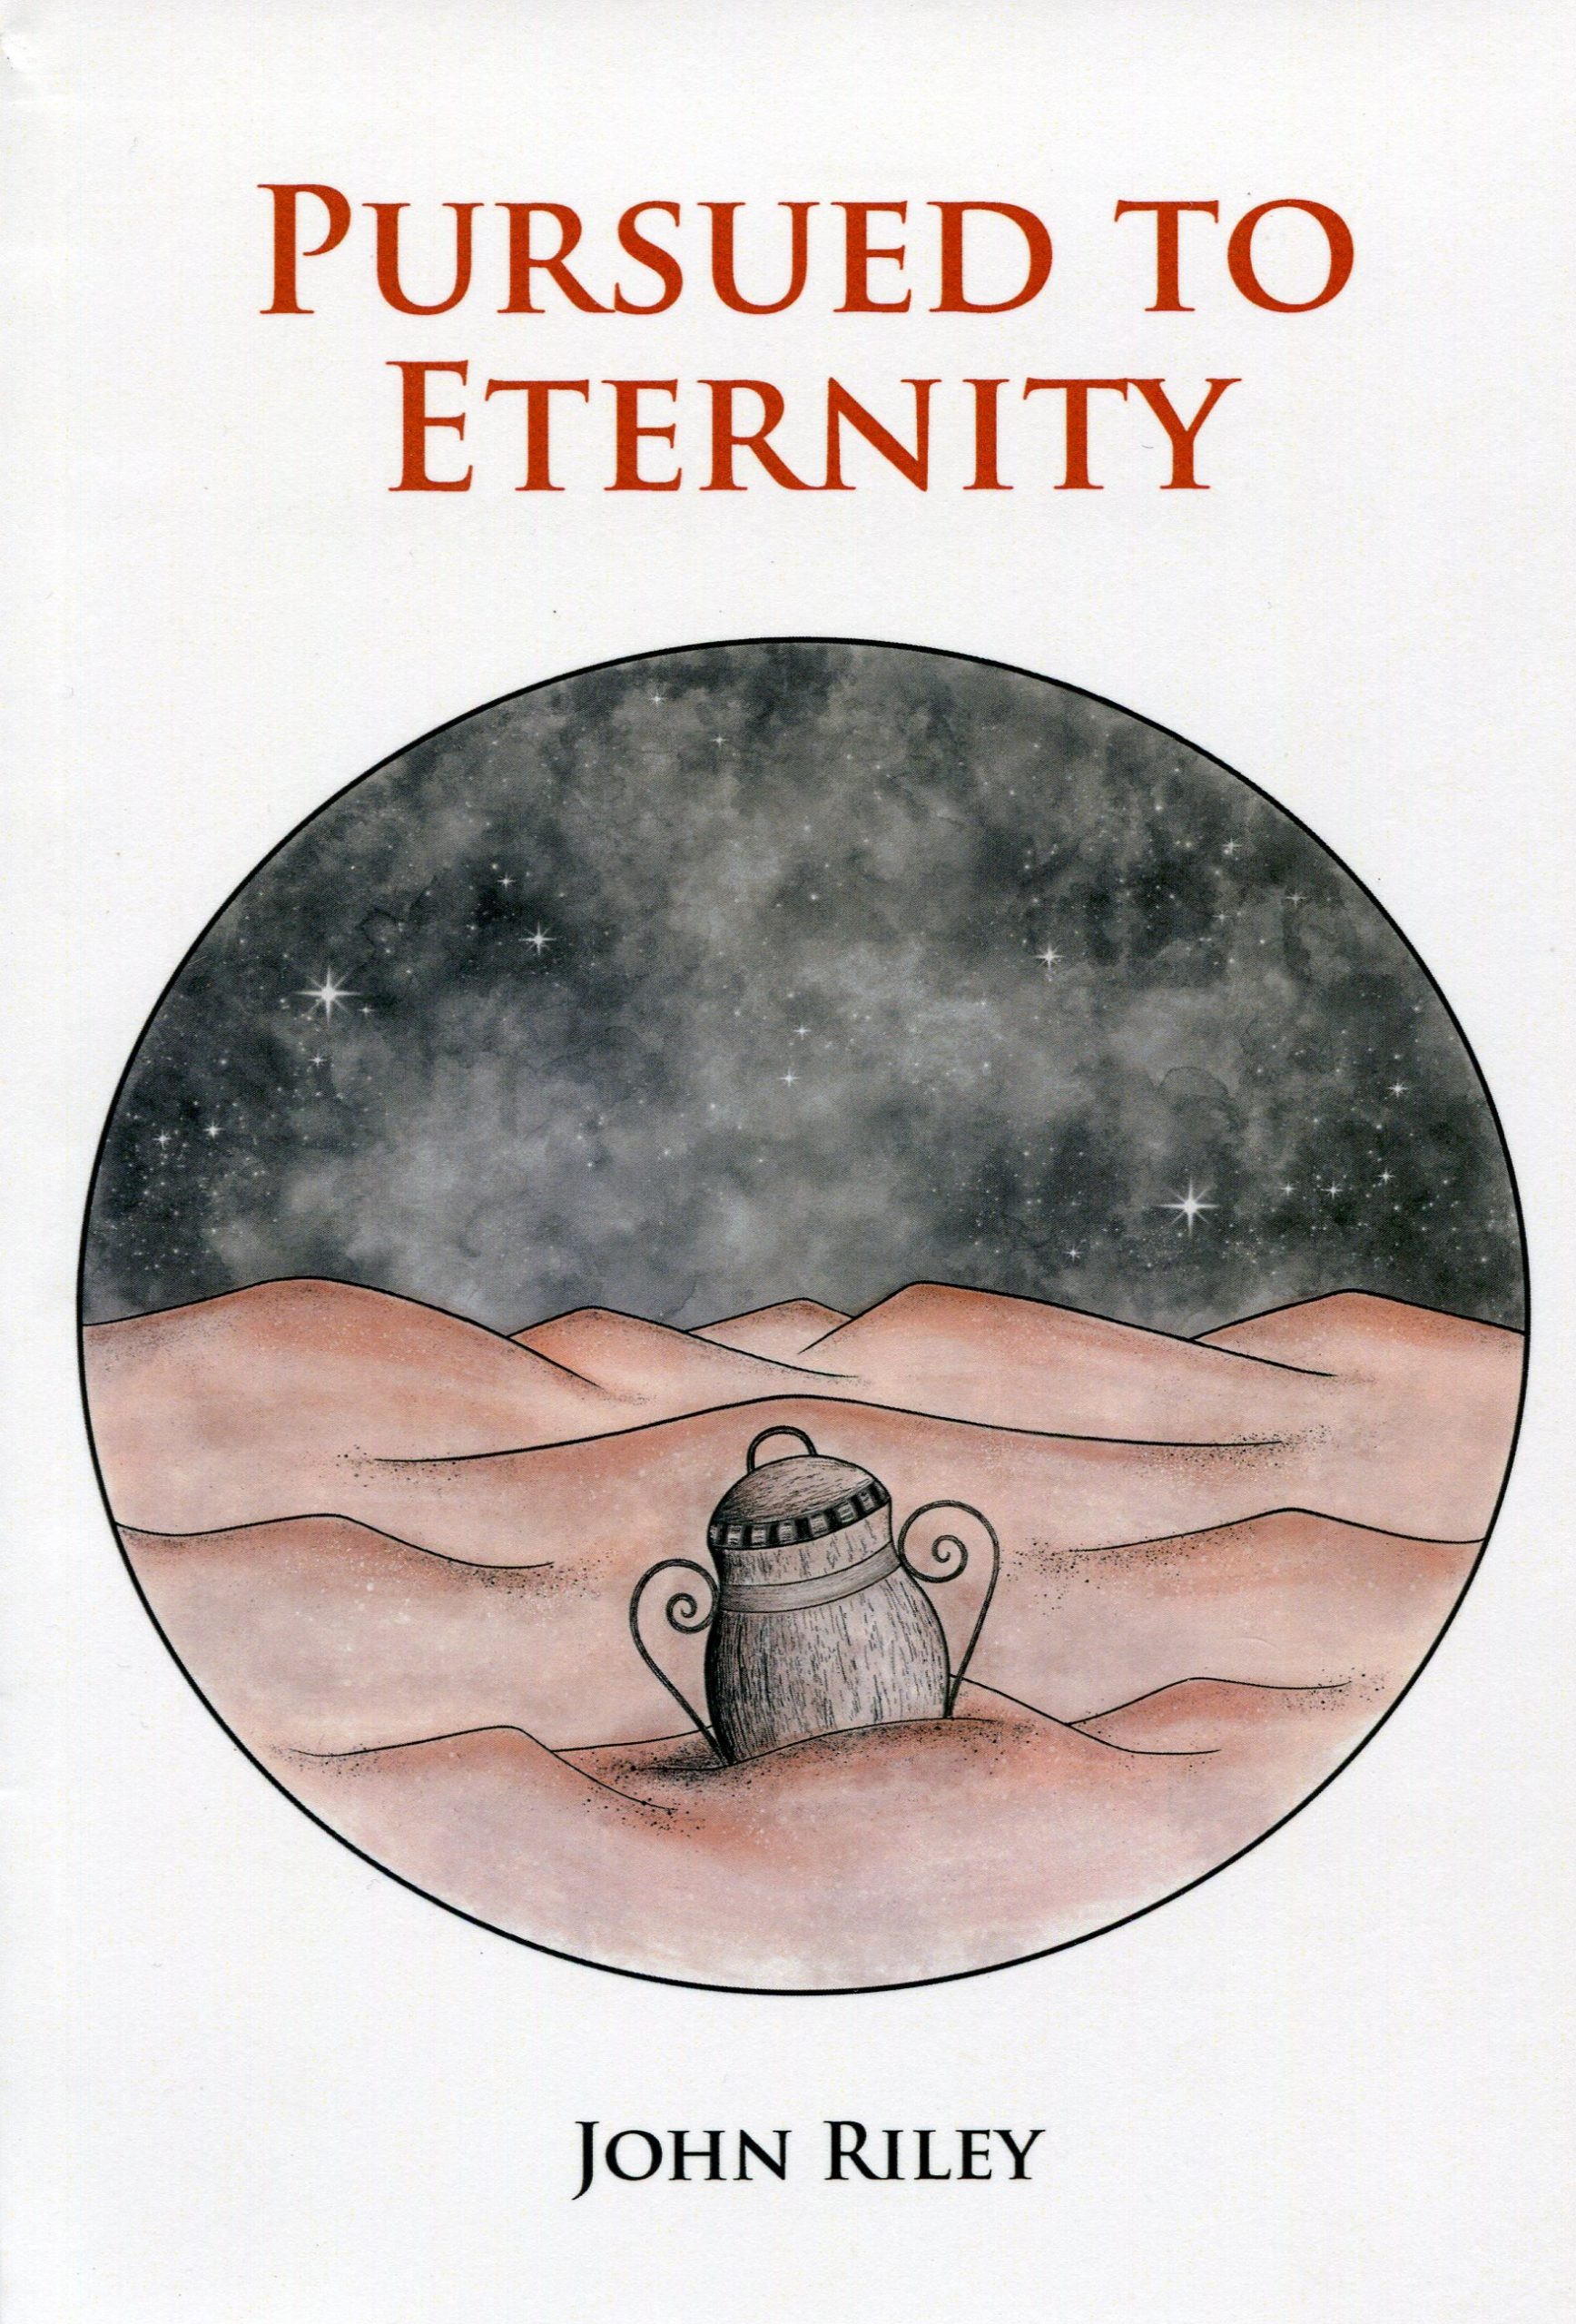 Pursued to Eternity by John Riley